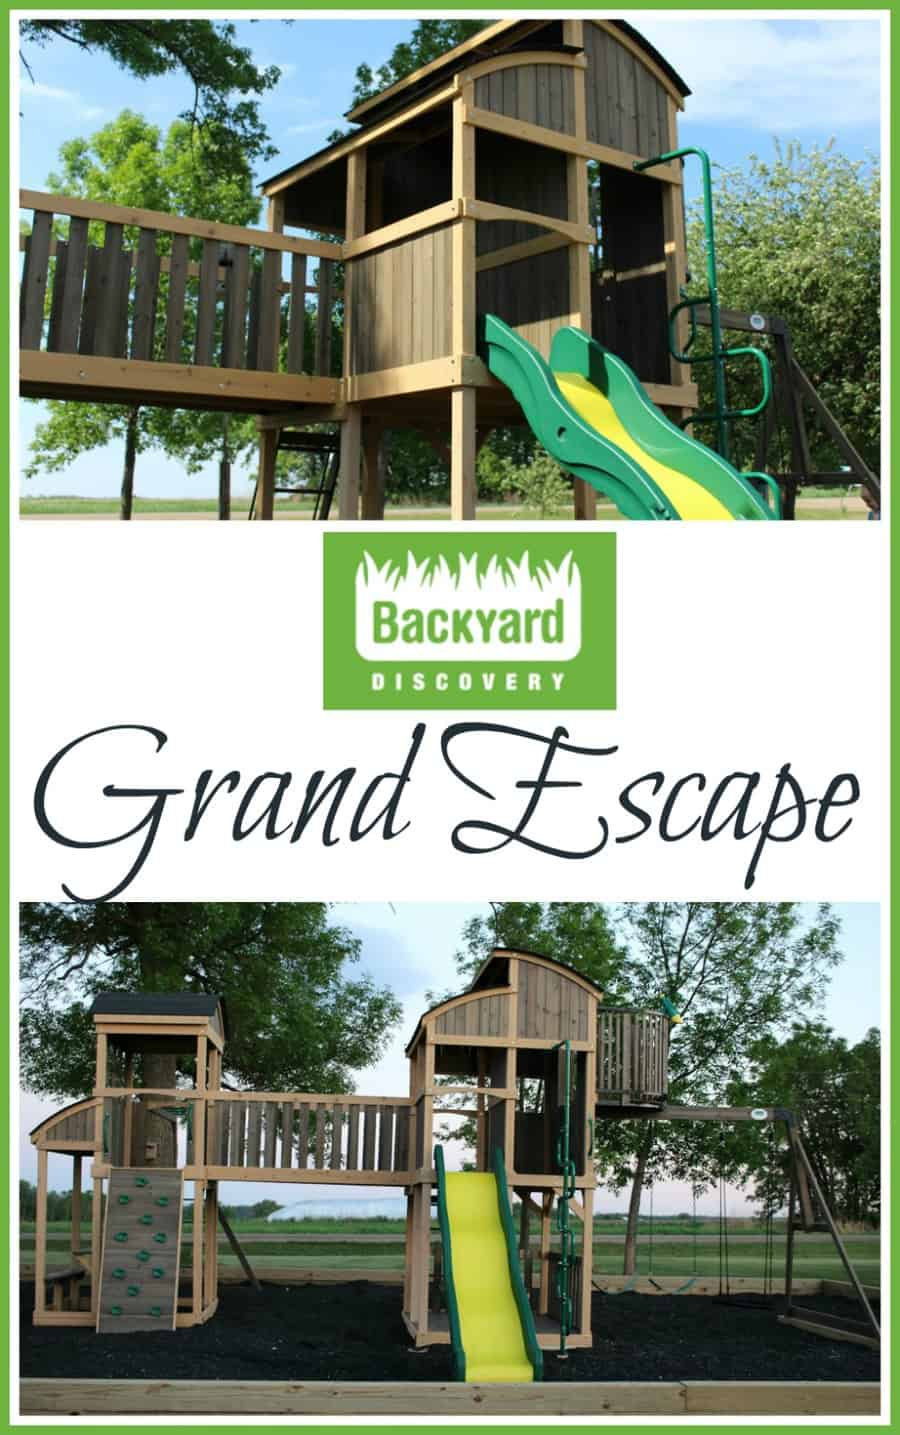 Ultimate Backyard With Backyard Discovery Grand Escape